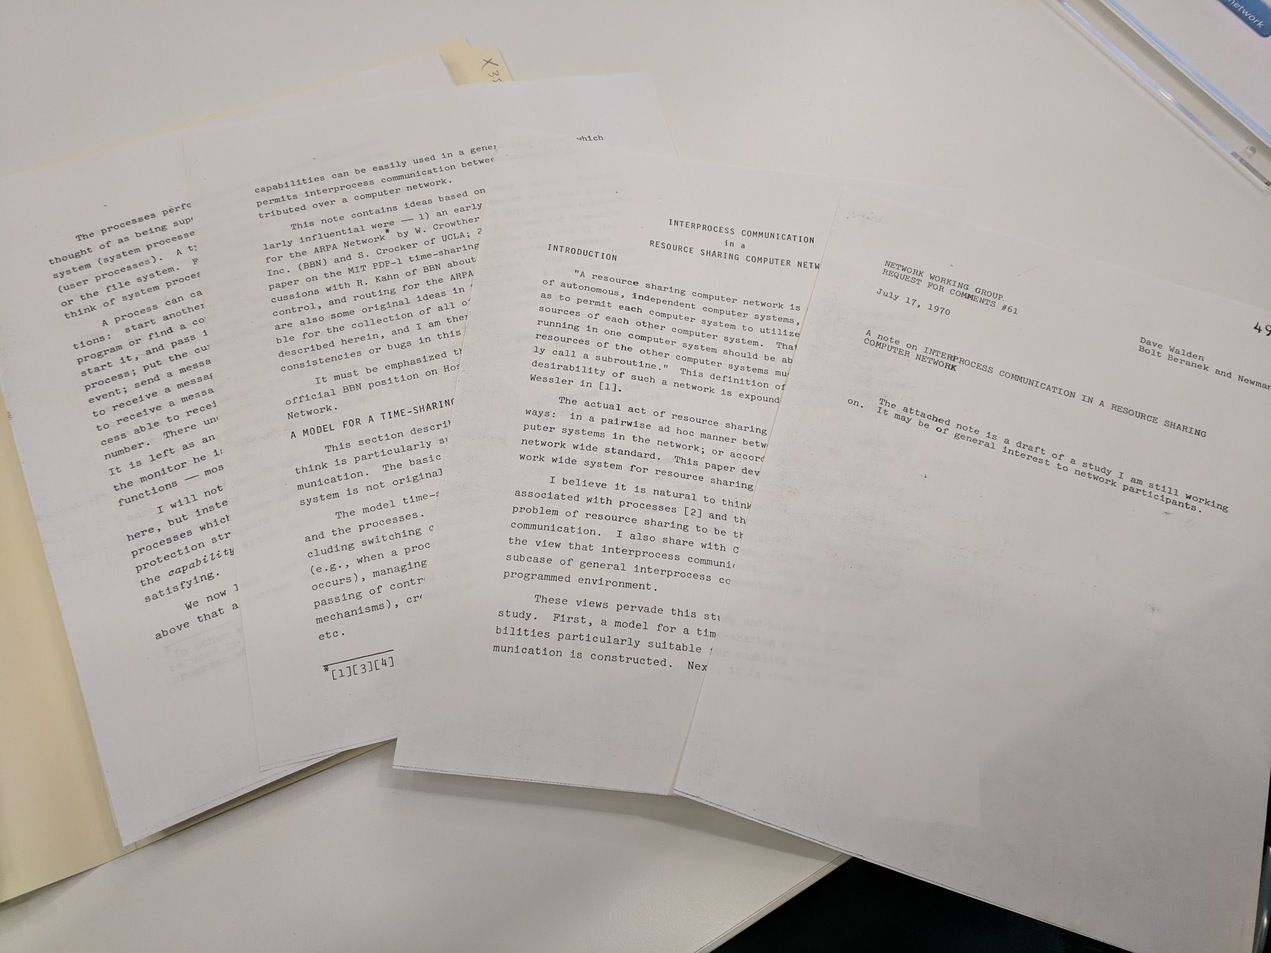 Four handsomely typewritten pages fanned out on a desk.